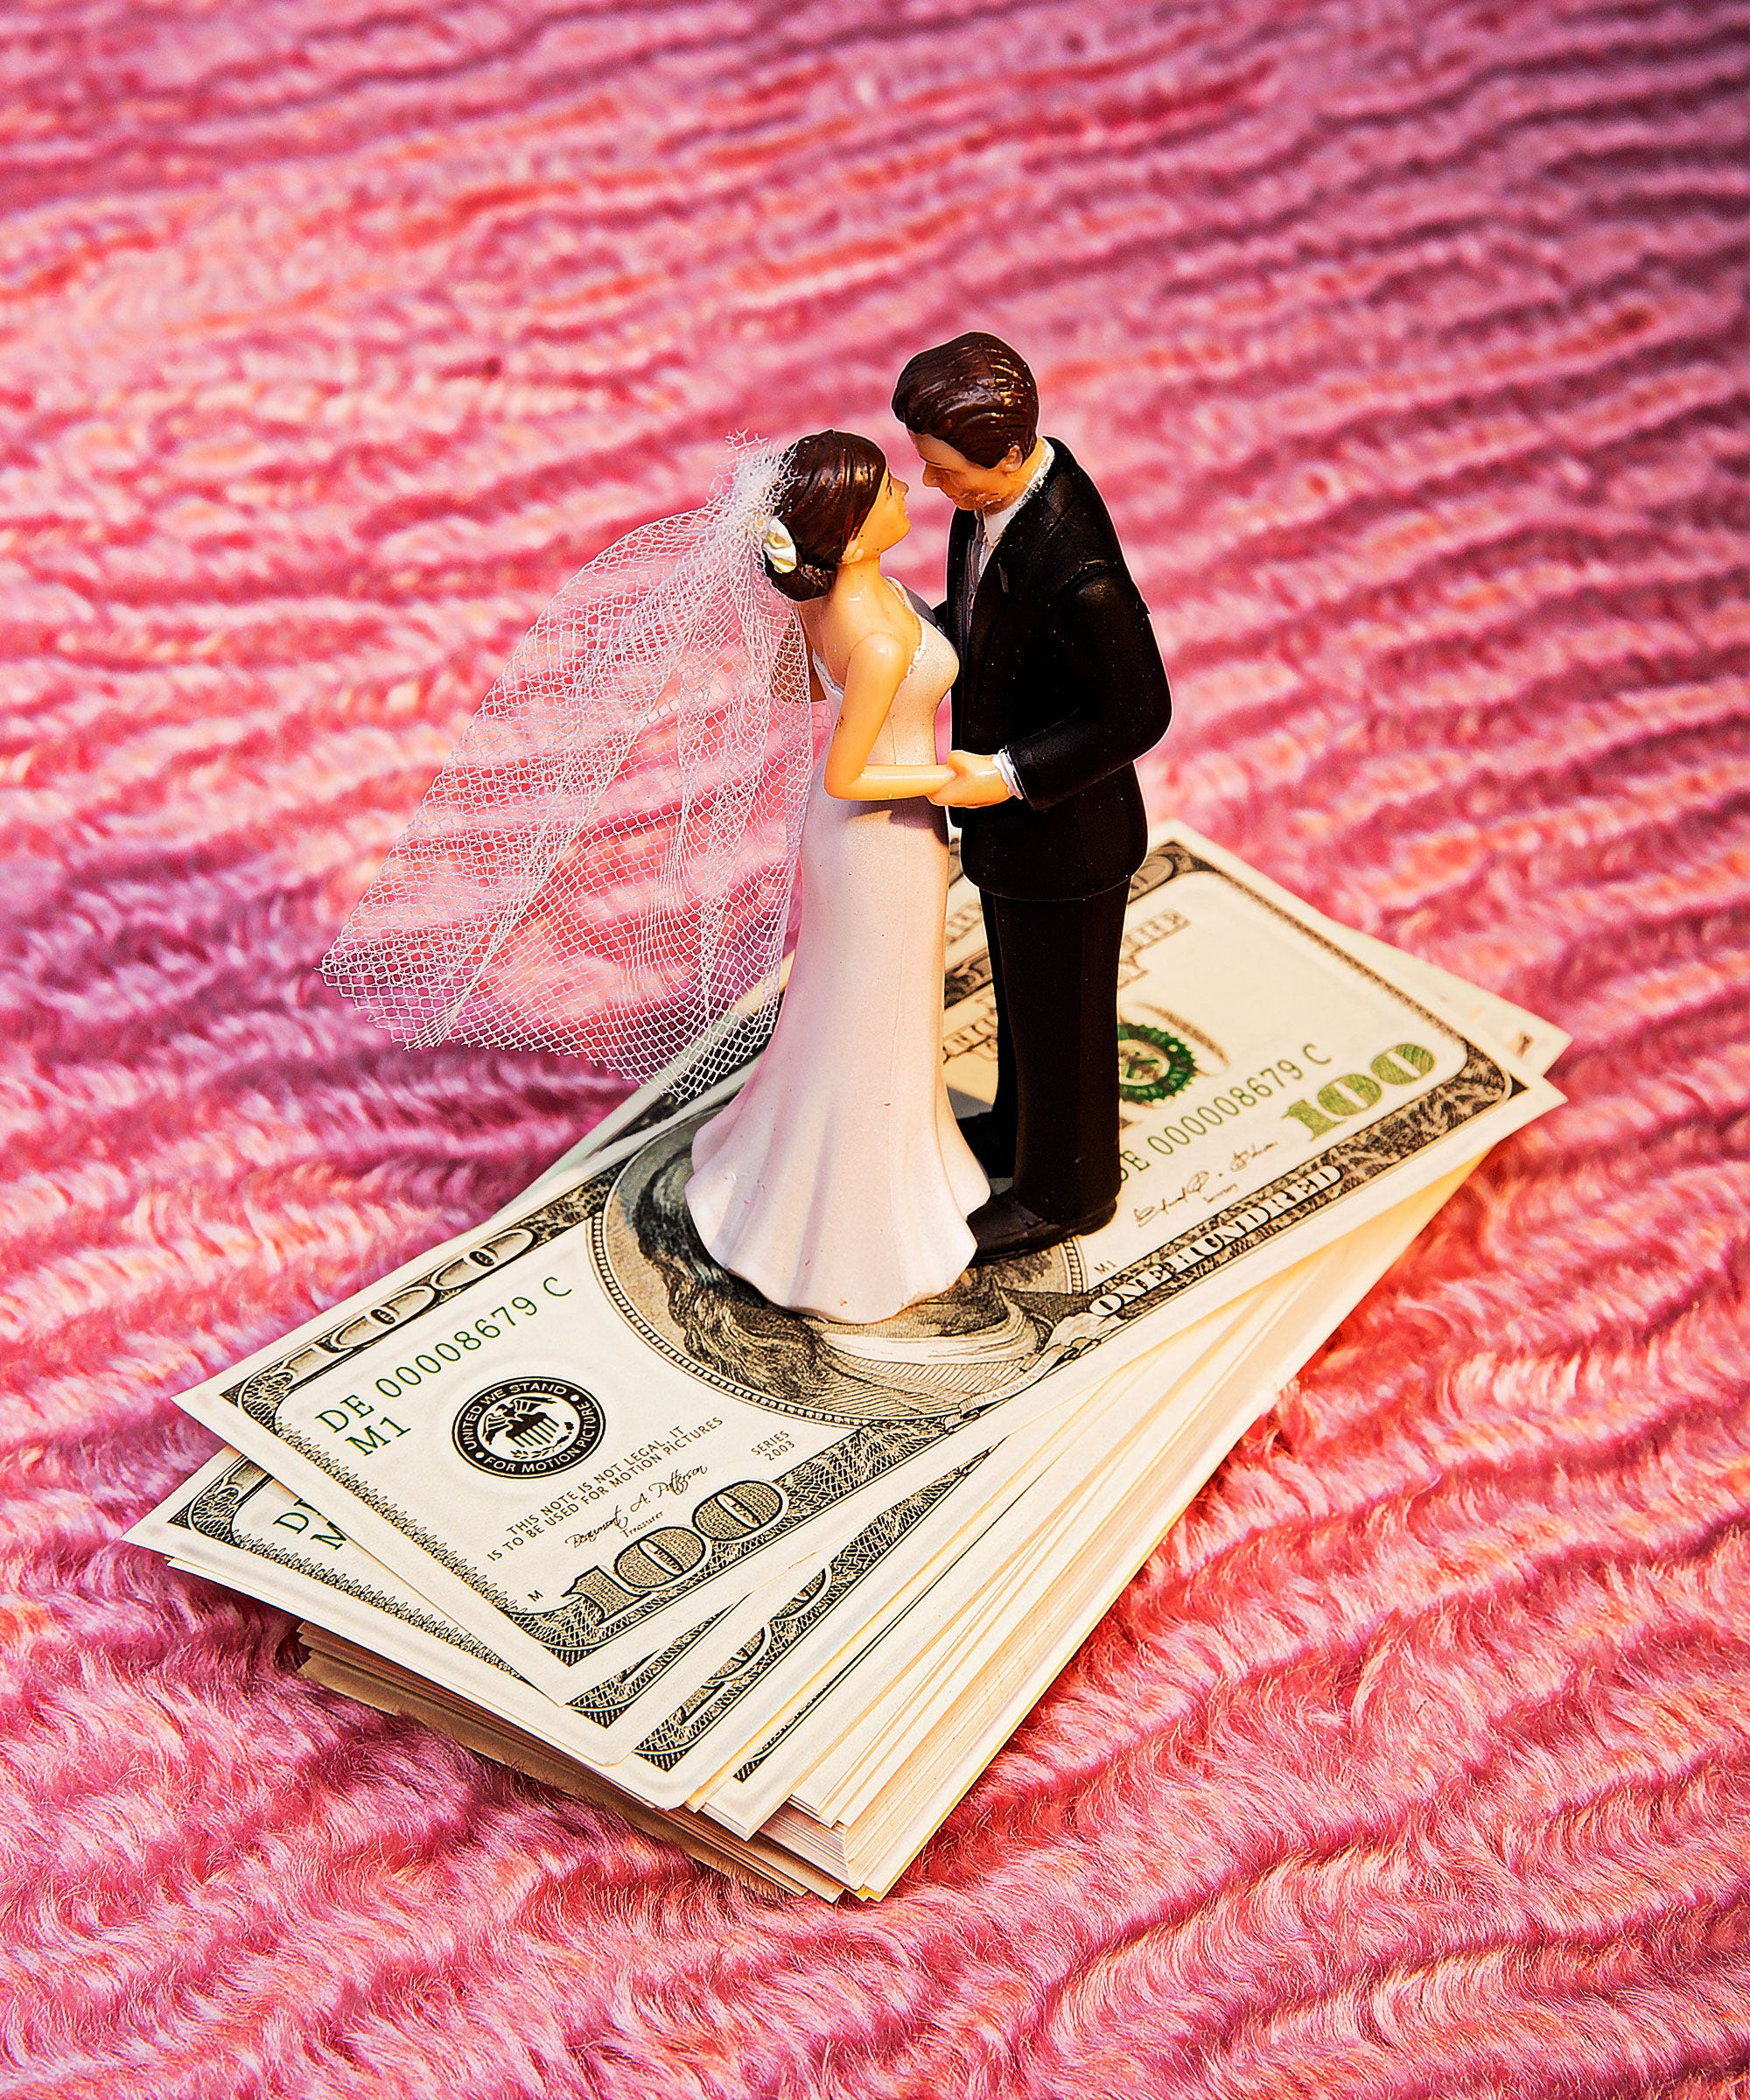 10 Women Share Who Paid For What At Their Weddings